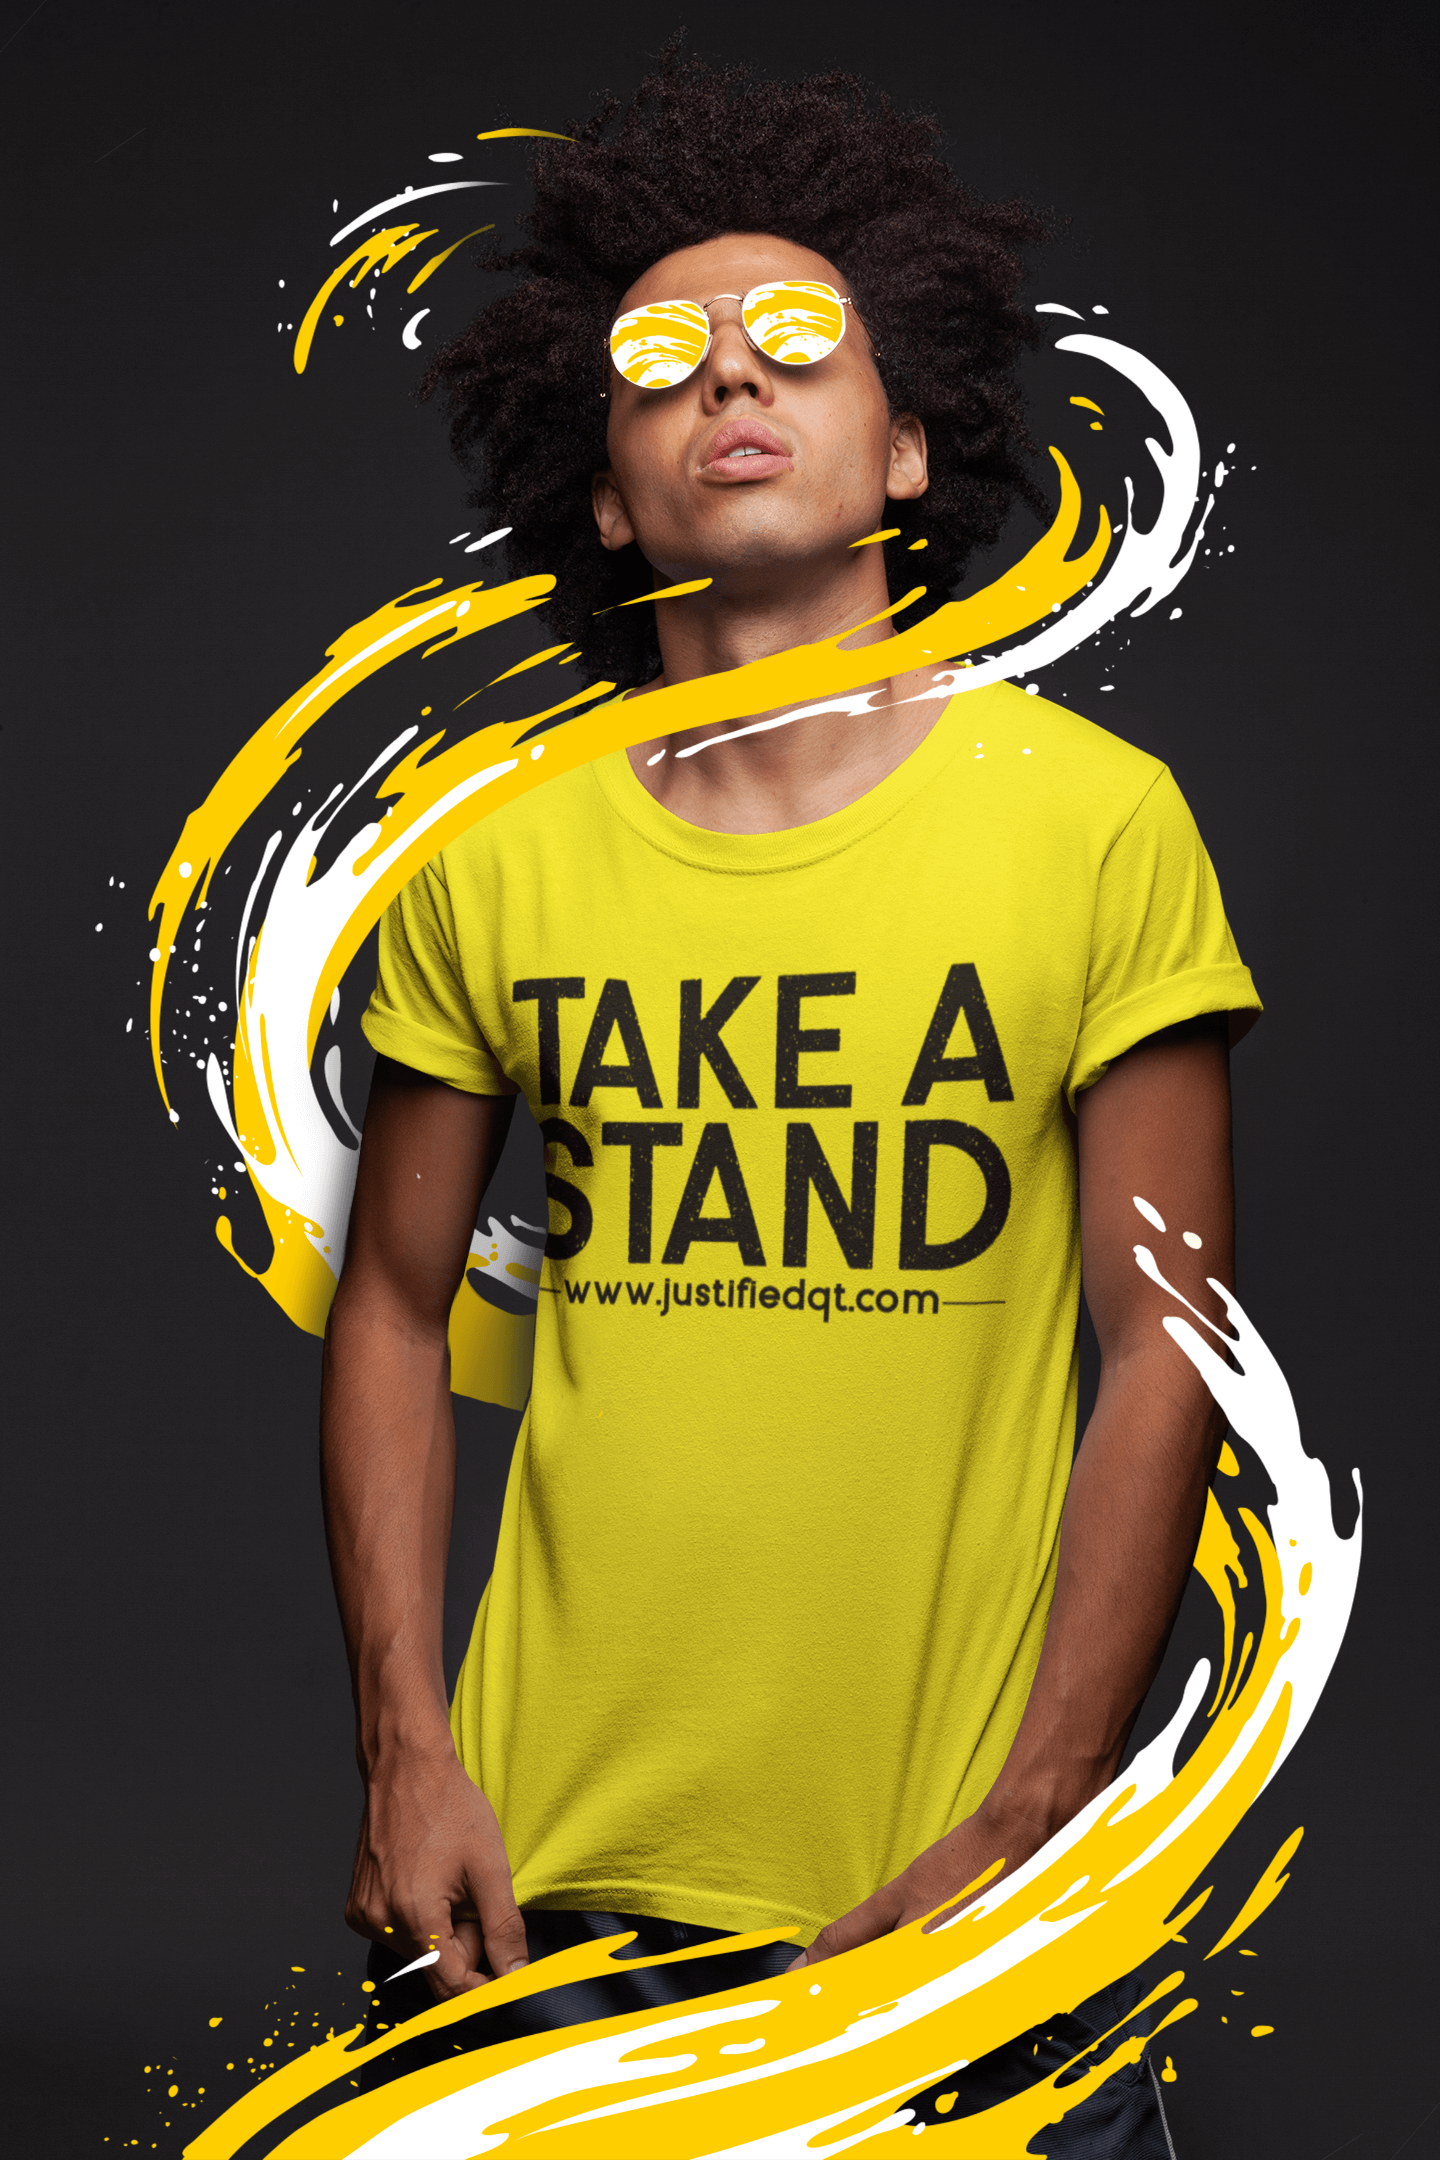 t shirt mockup of a man with dark glasses under a bright light 22859 1